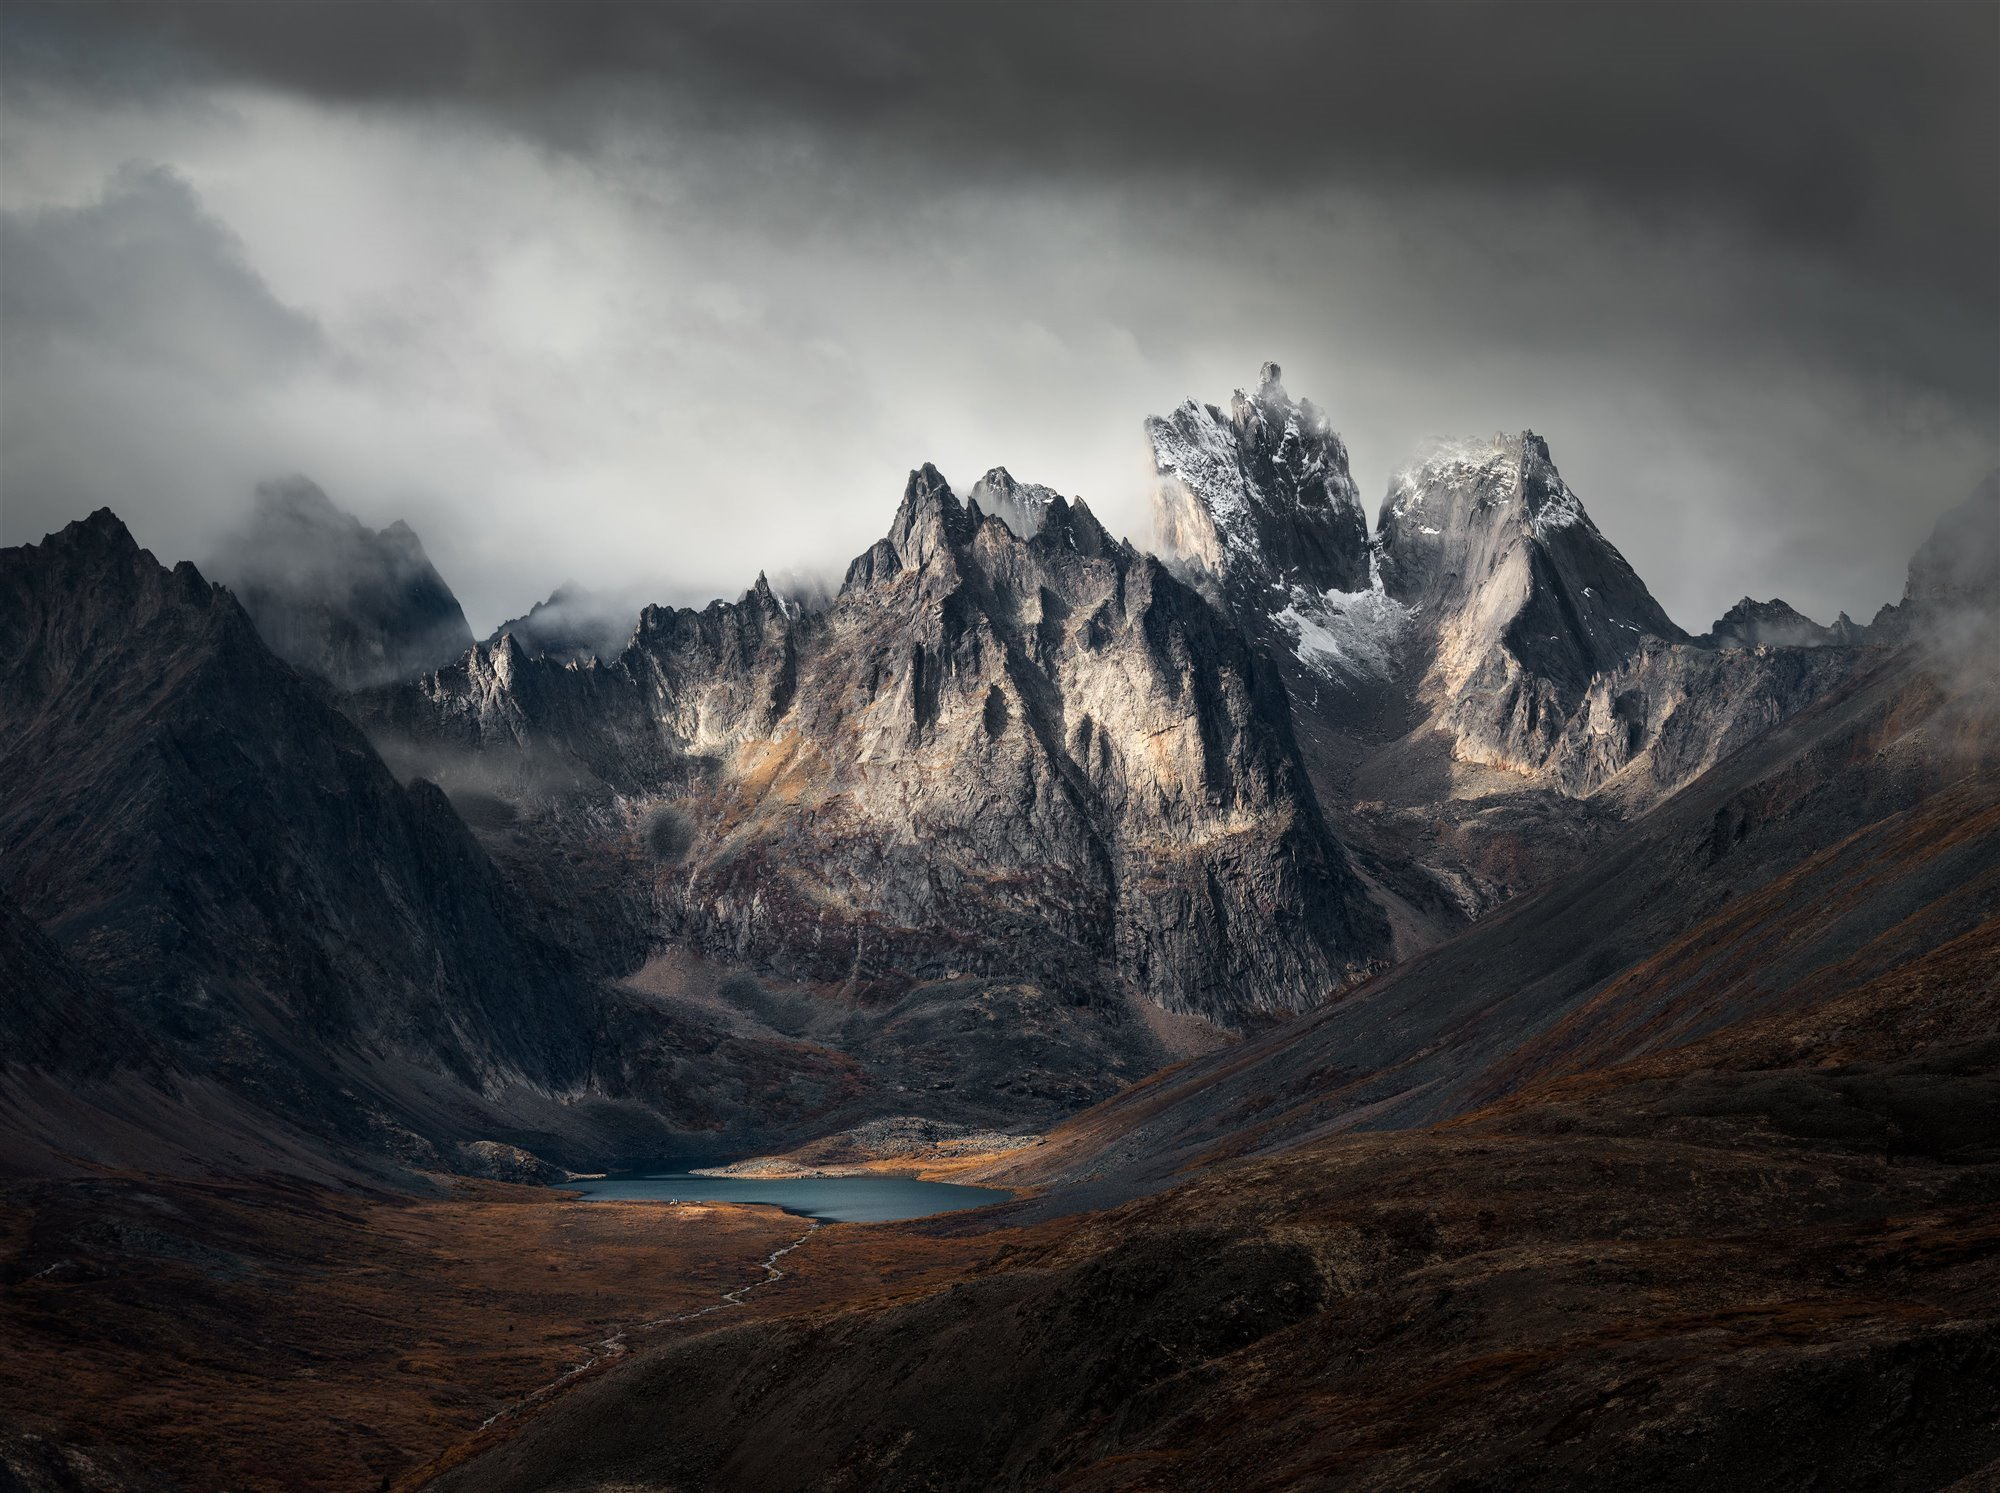 Landscape Photographer of the Year 2019 - Tercer puesto